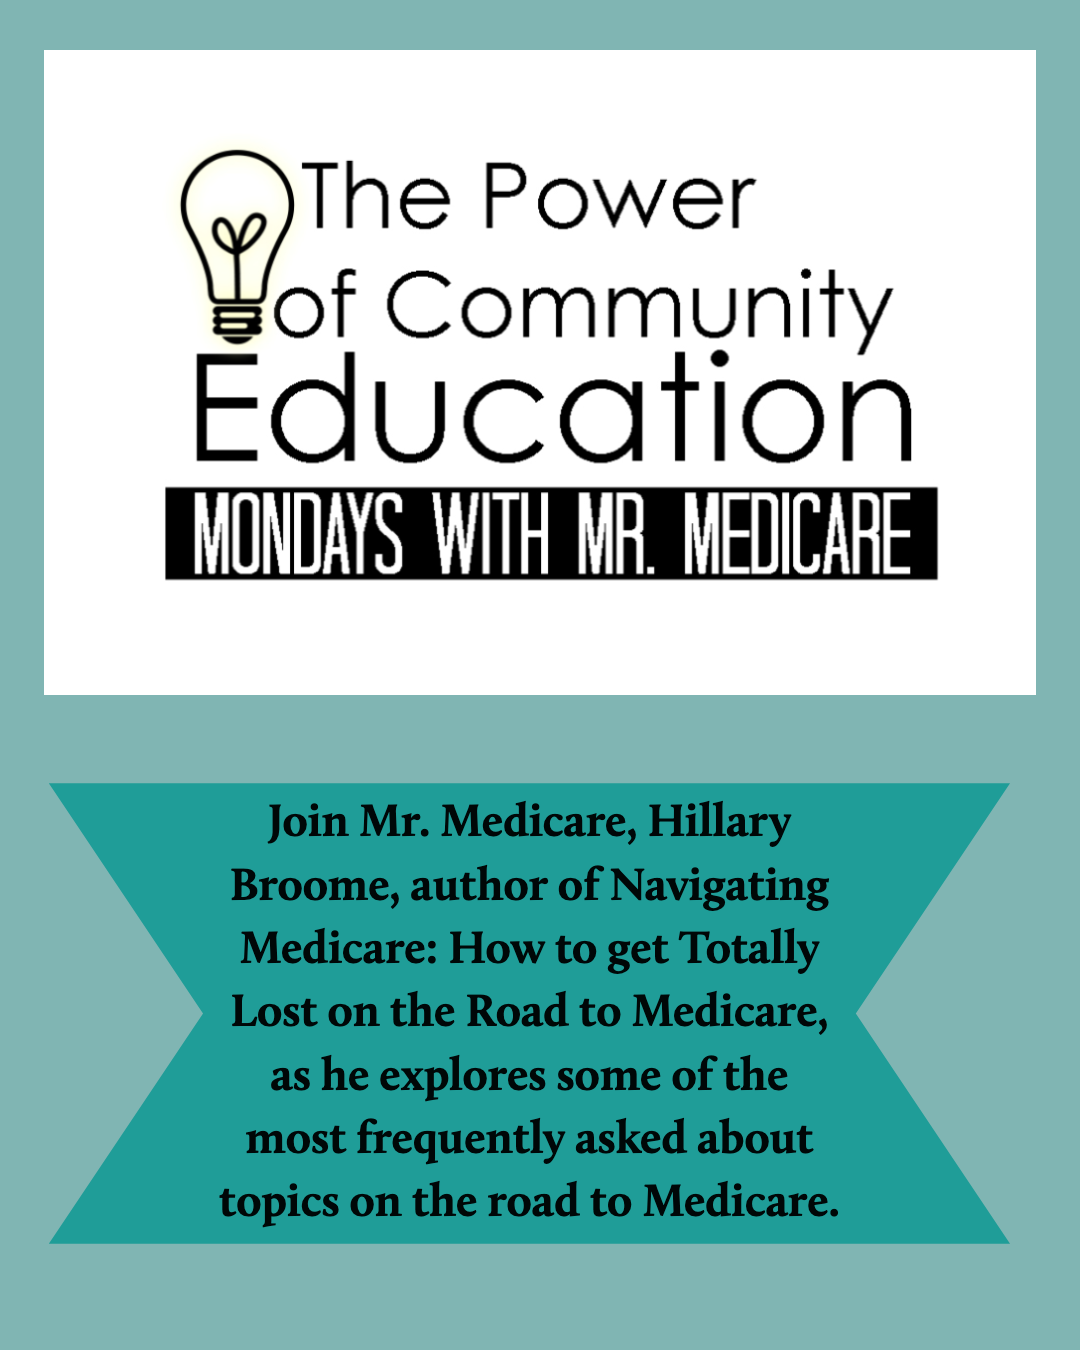 Mondays with Mr. Medicare(1).png